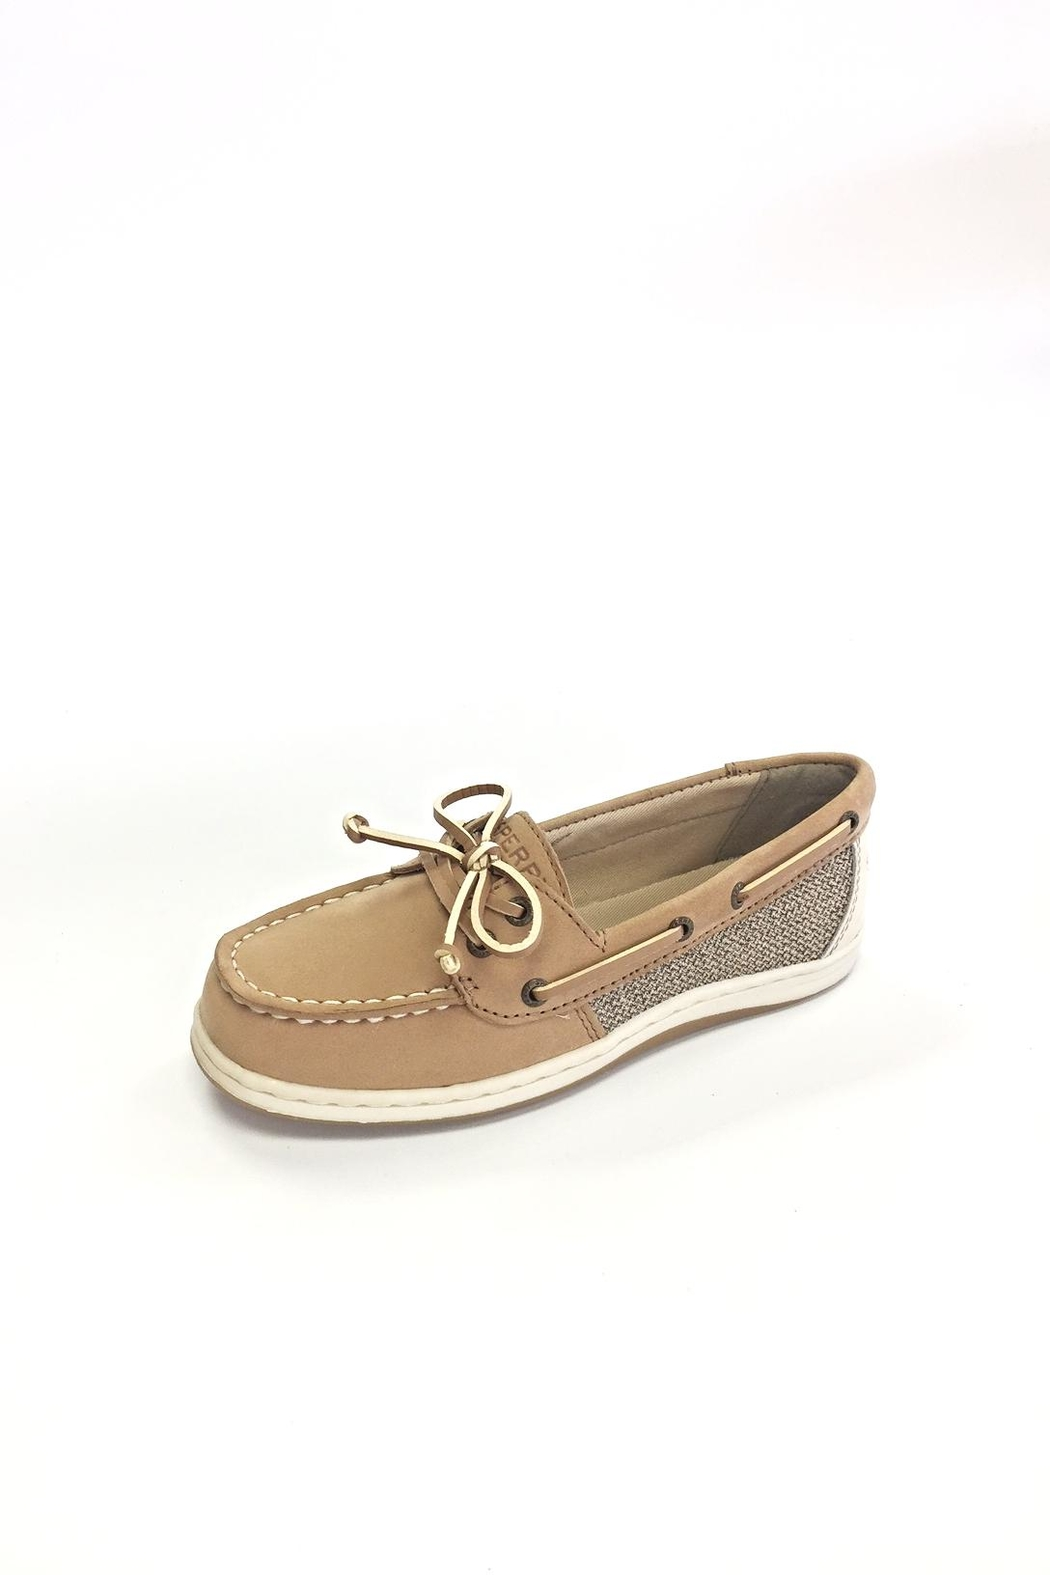 Sperry Leather Slip On Shoes - Main Image